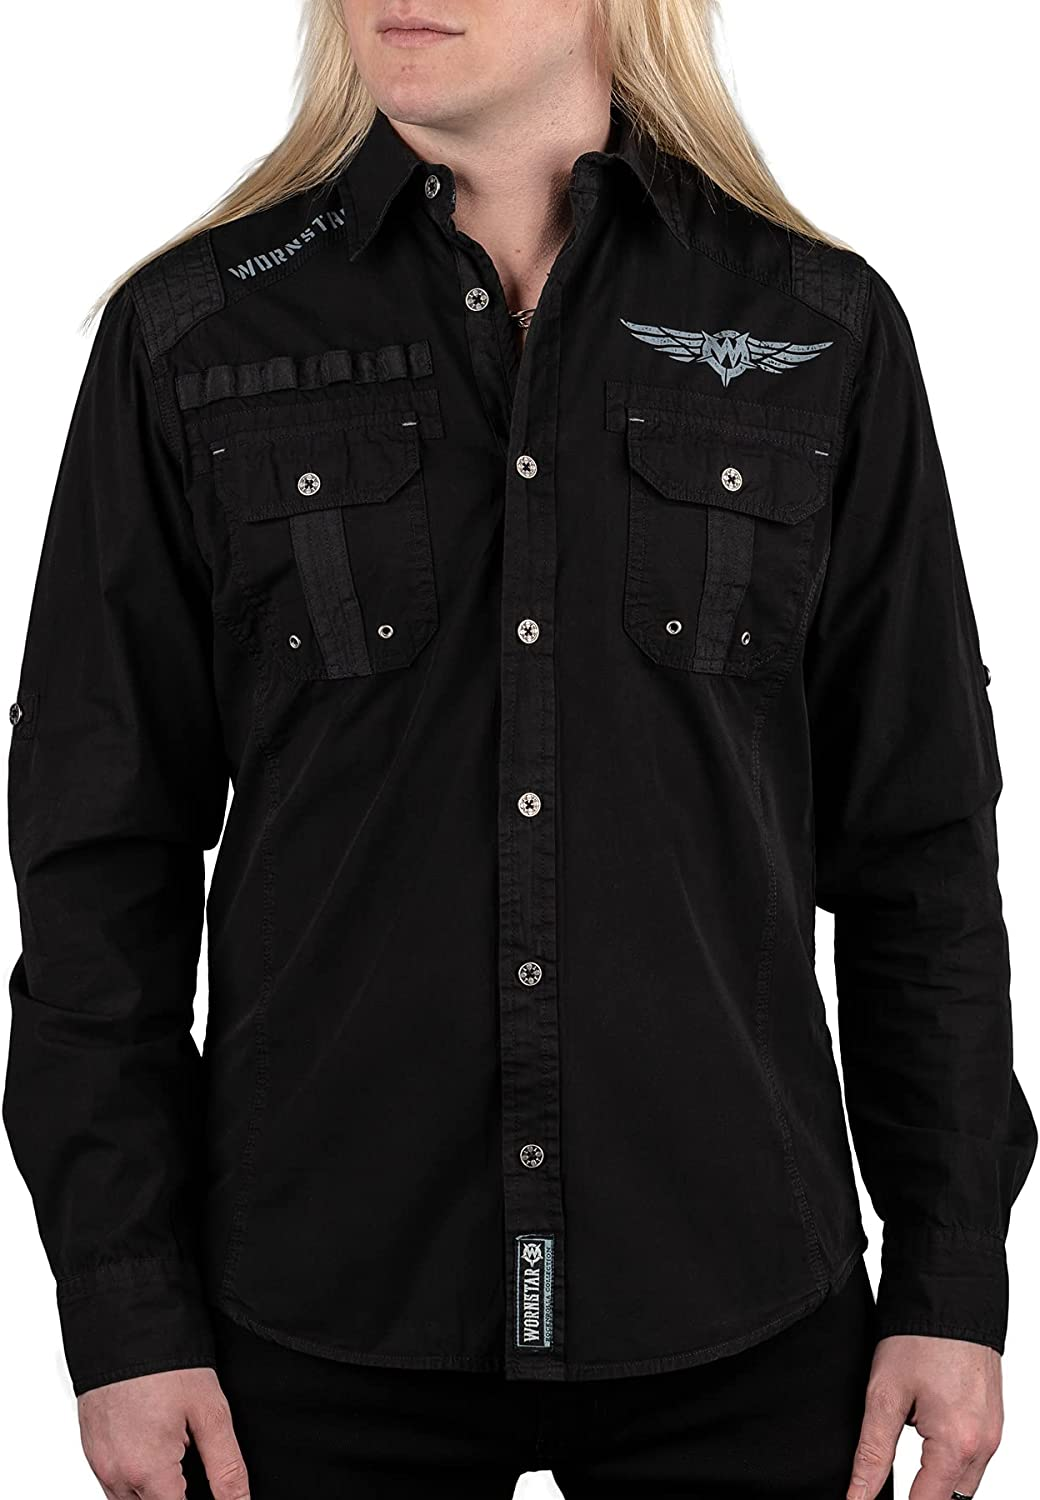 Wornstar Max 50% OFF Clothing Stealth Shirt 67% OFF of fixed price